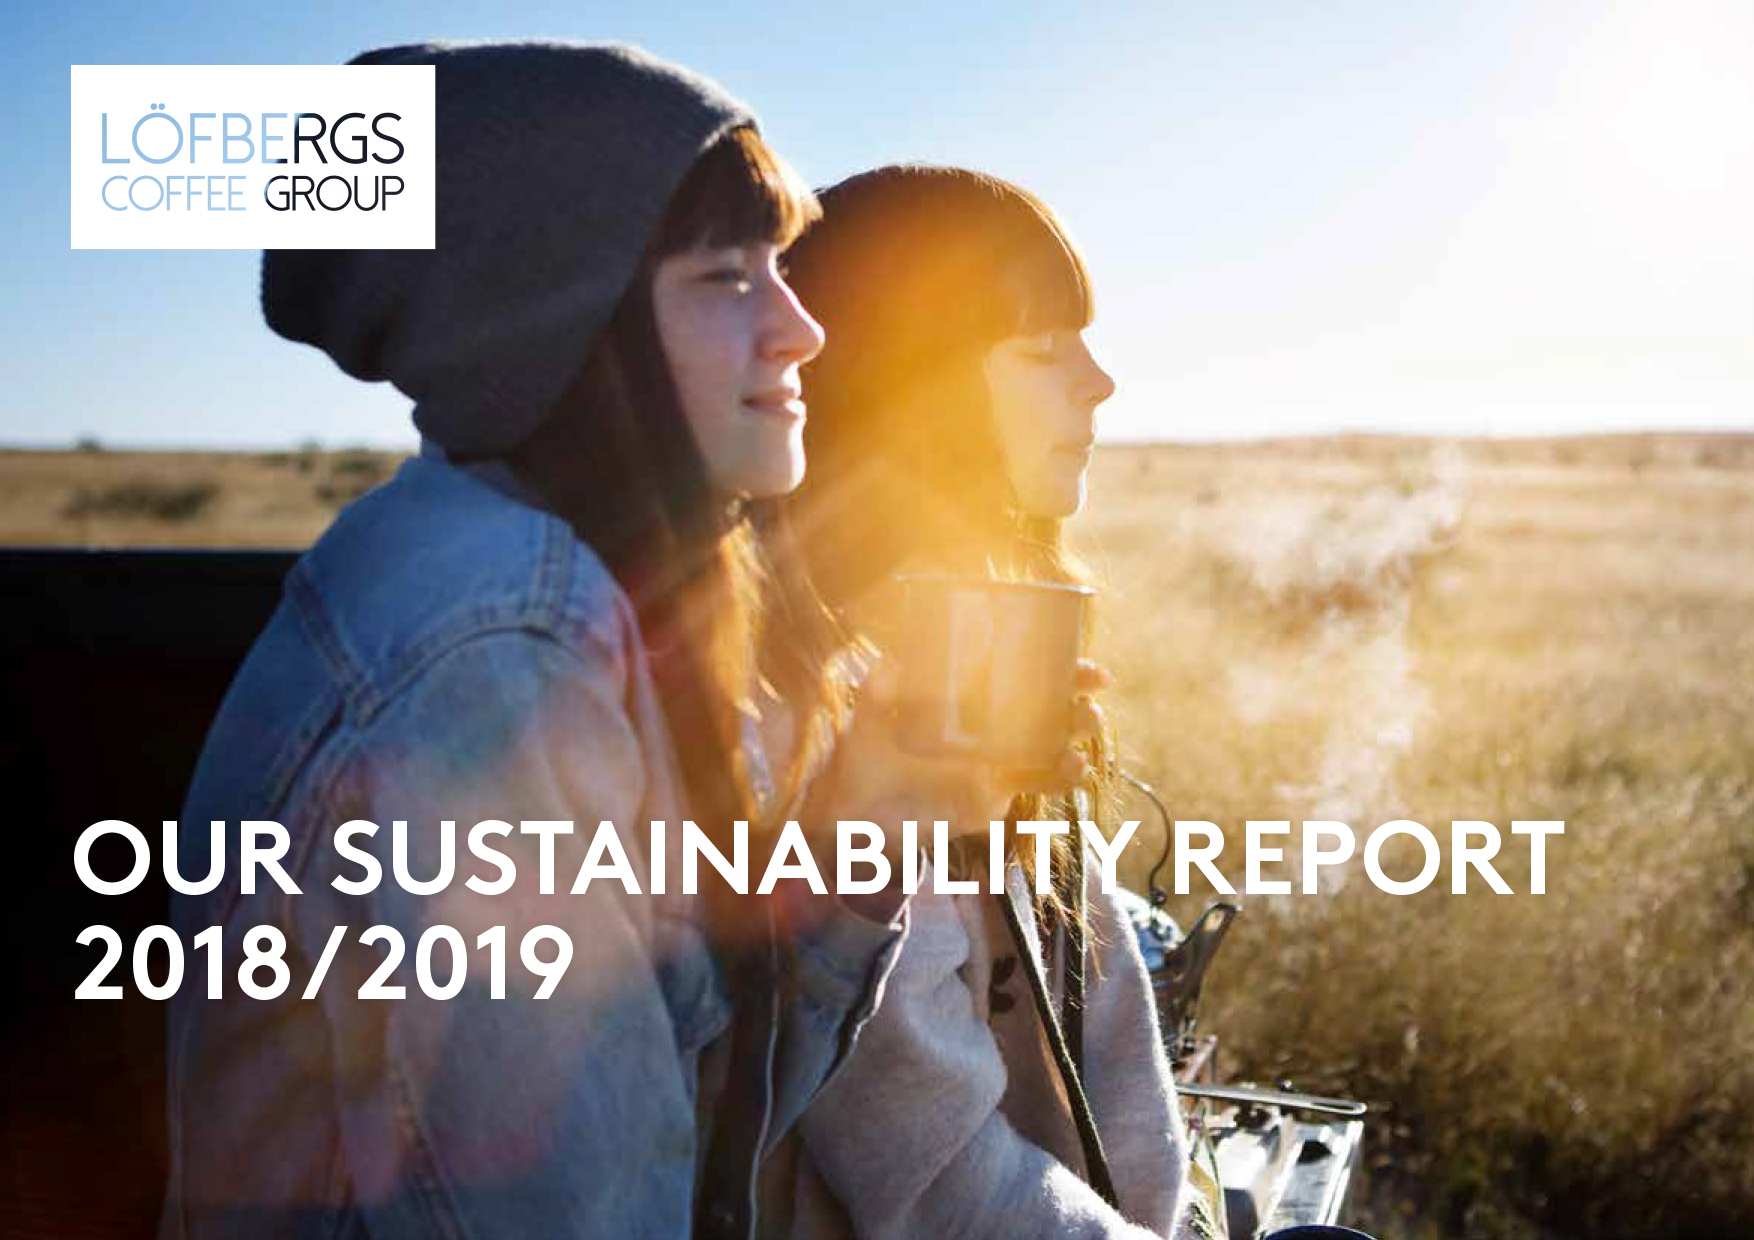 Löfbergs Sustainability Report 2018/2019